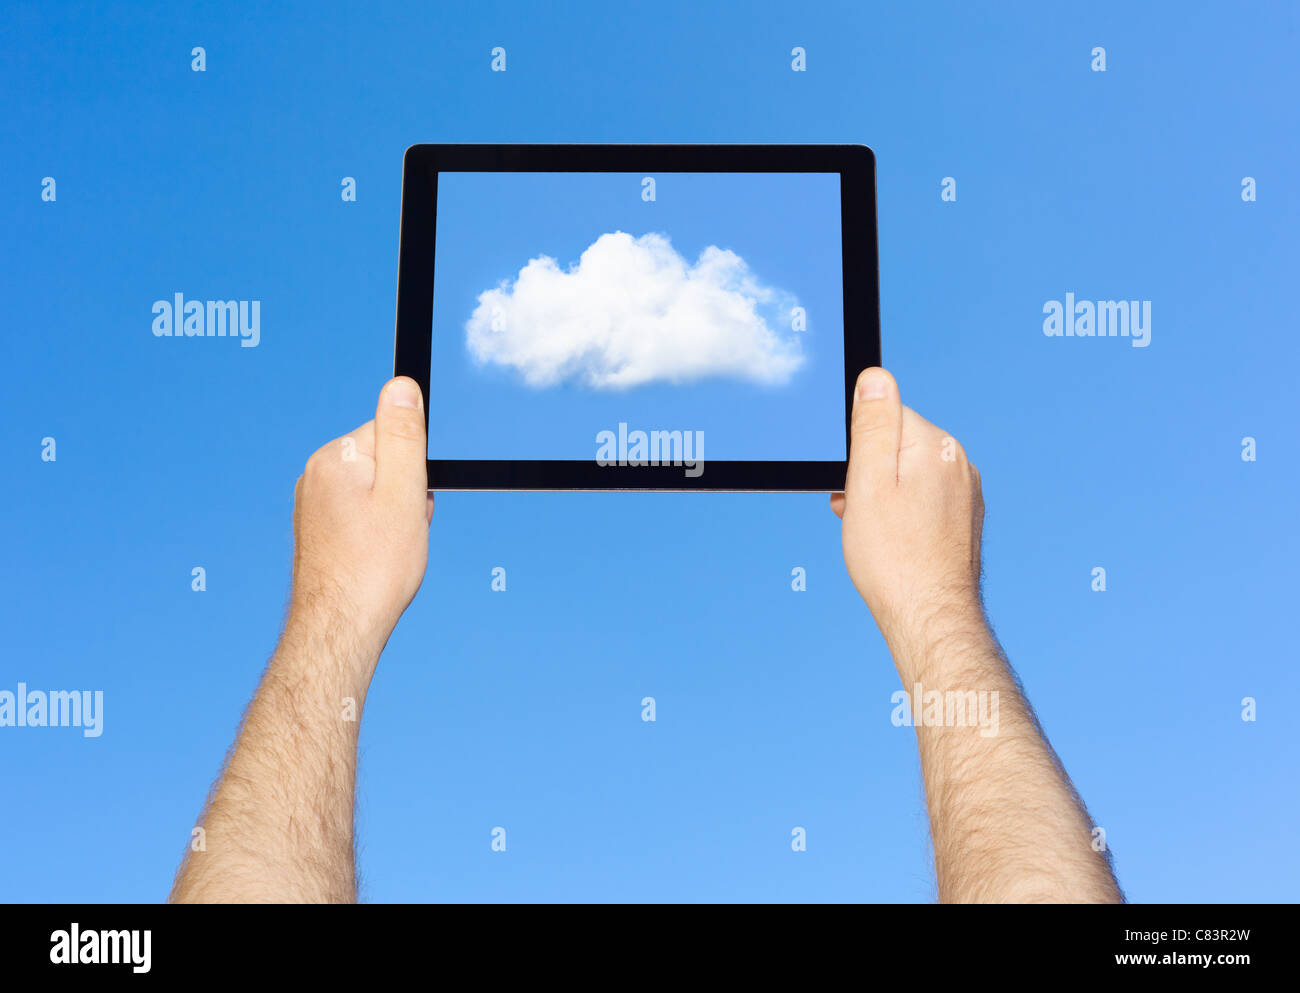 Man viewing cloud on tablet computer - Stock Image